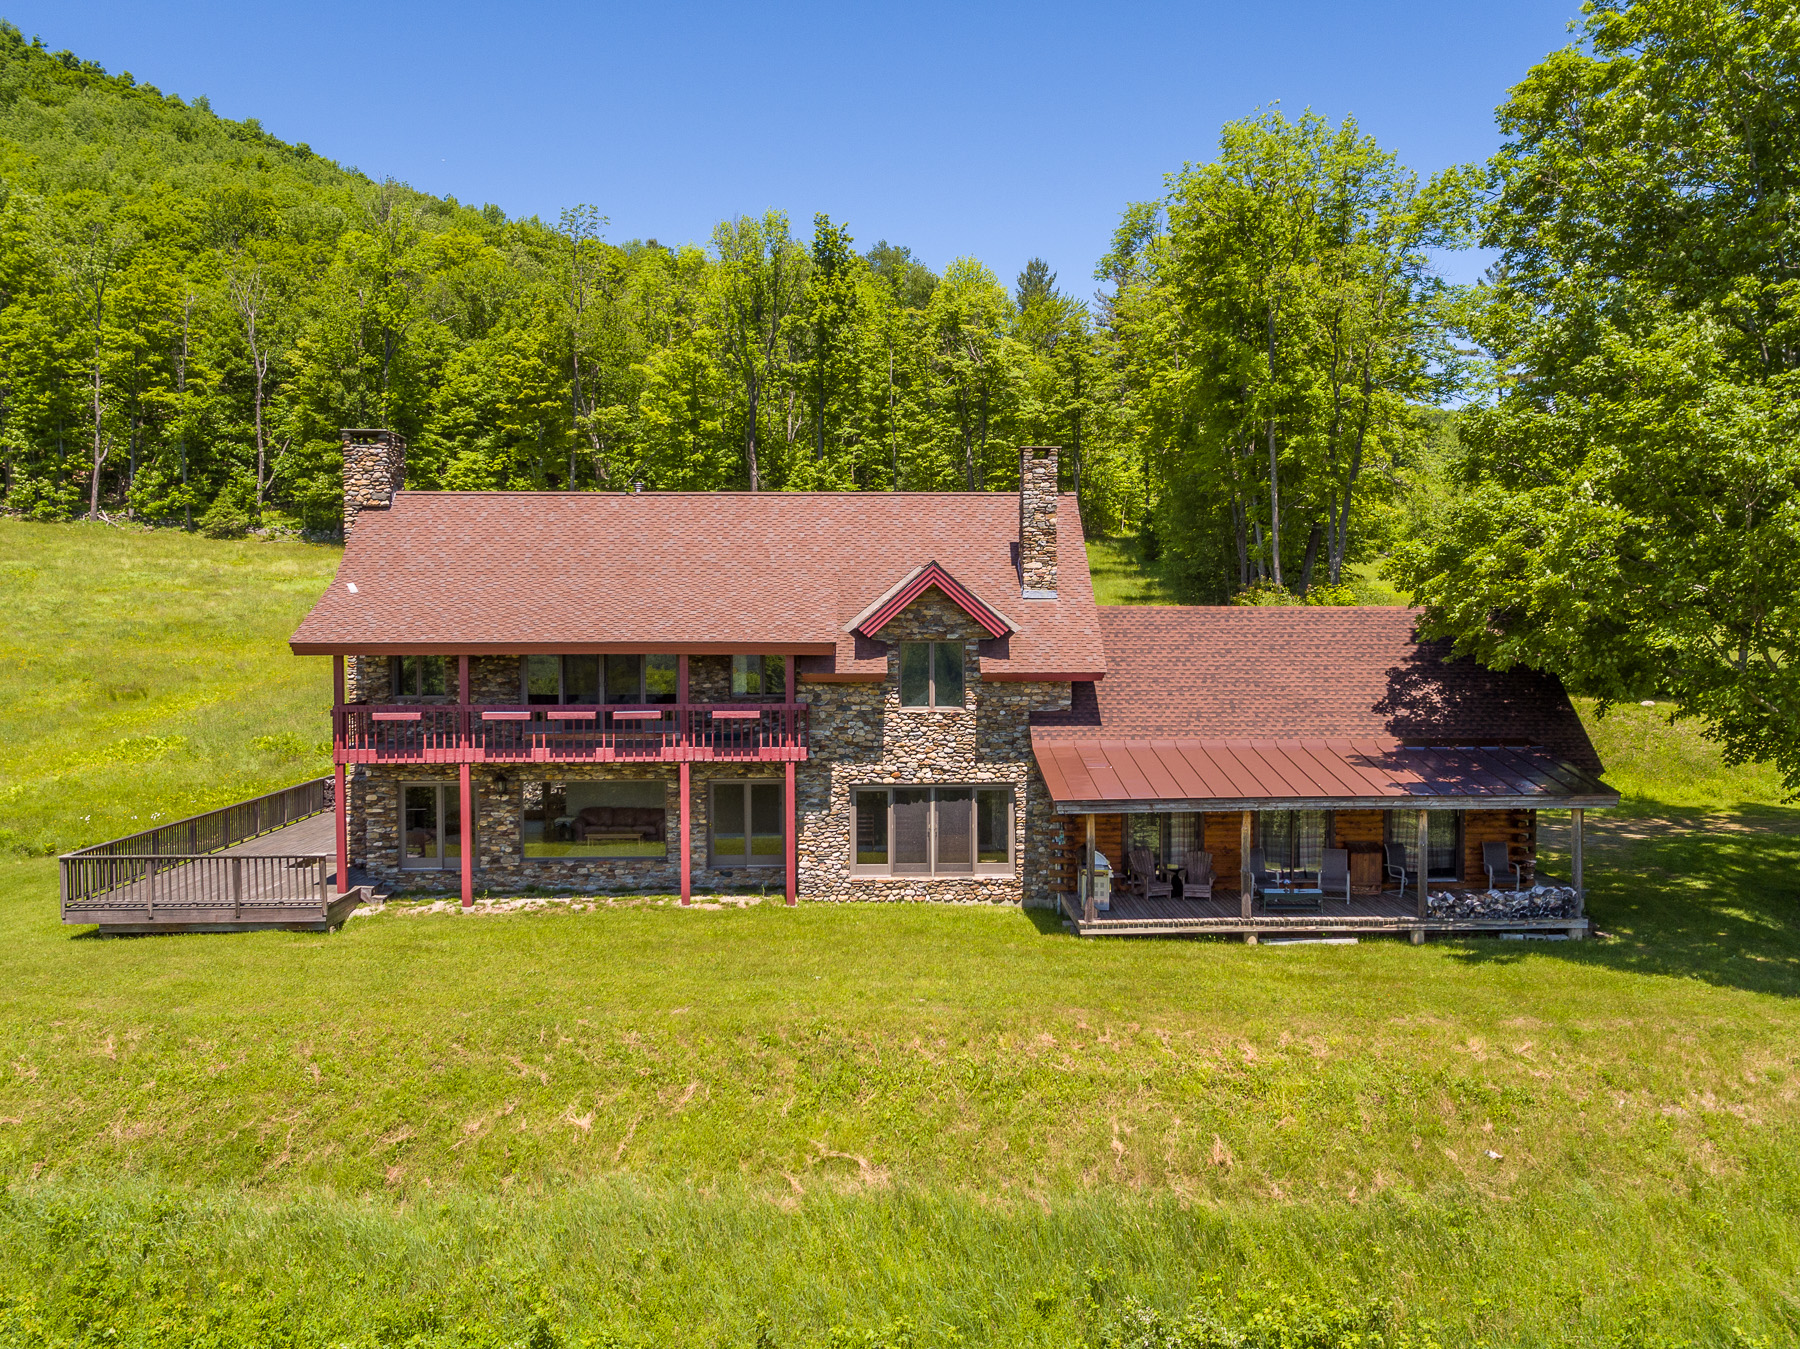 Casa Unifamiliar por un Venta en 245 Acres with Panoramic Views 231 Christmas Tree Farm Rd Chester, Vermont, 05143 Estados Unidos